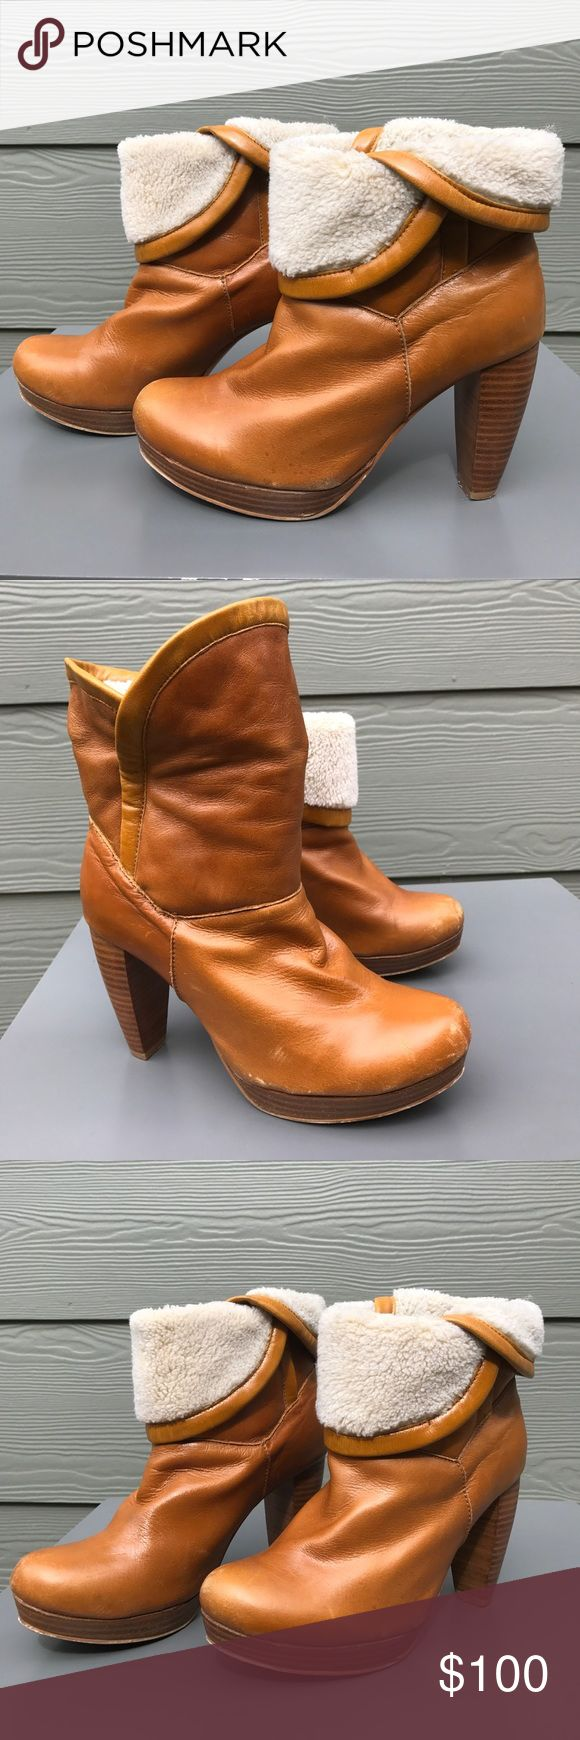 Charlotte Ronson Sherpa Camel Heeled Boots Charlotte Ronson Shearling Sherpa Lining Camel Leather High Heeled Boots. Can be worn up or folded over.. Top insole layer losing adhesive, easily glued back or put in new insoles. No significant wear in the heels. A few scratches in leather. Size 38 fits 7.5 or 8. Charlotte Ronson Shoes Heeled Boots